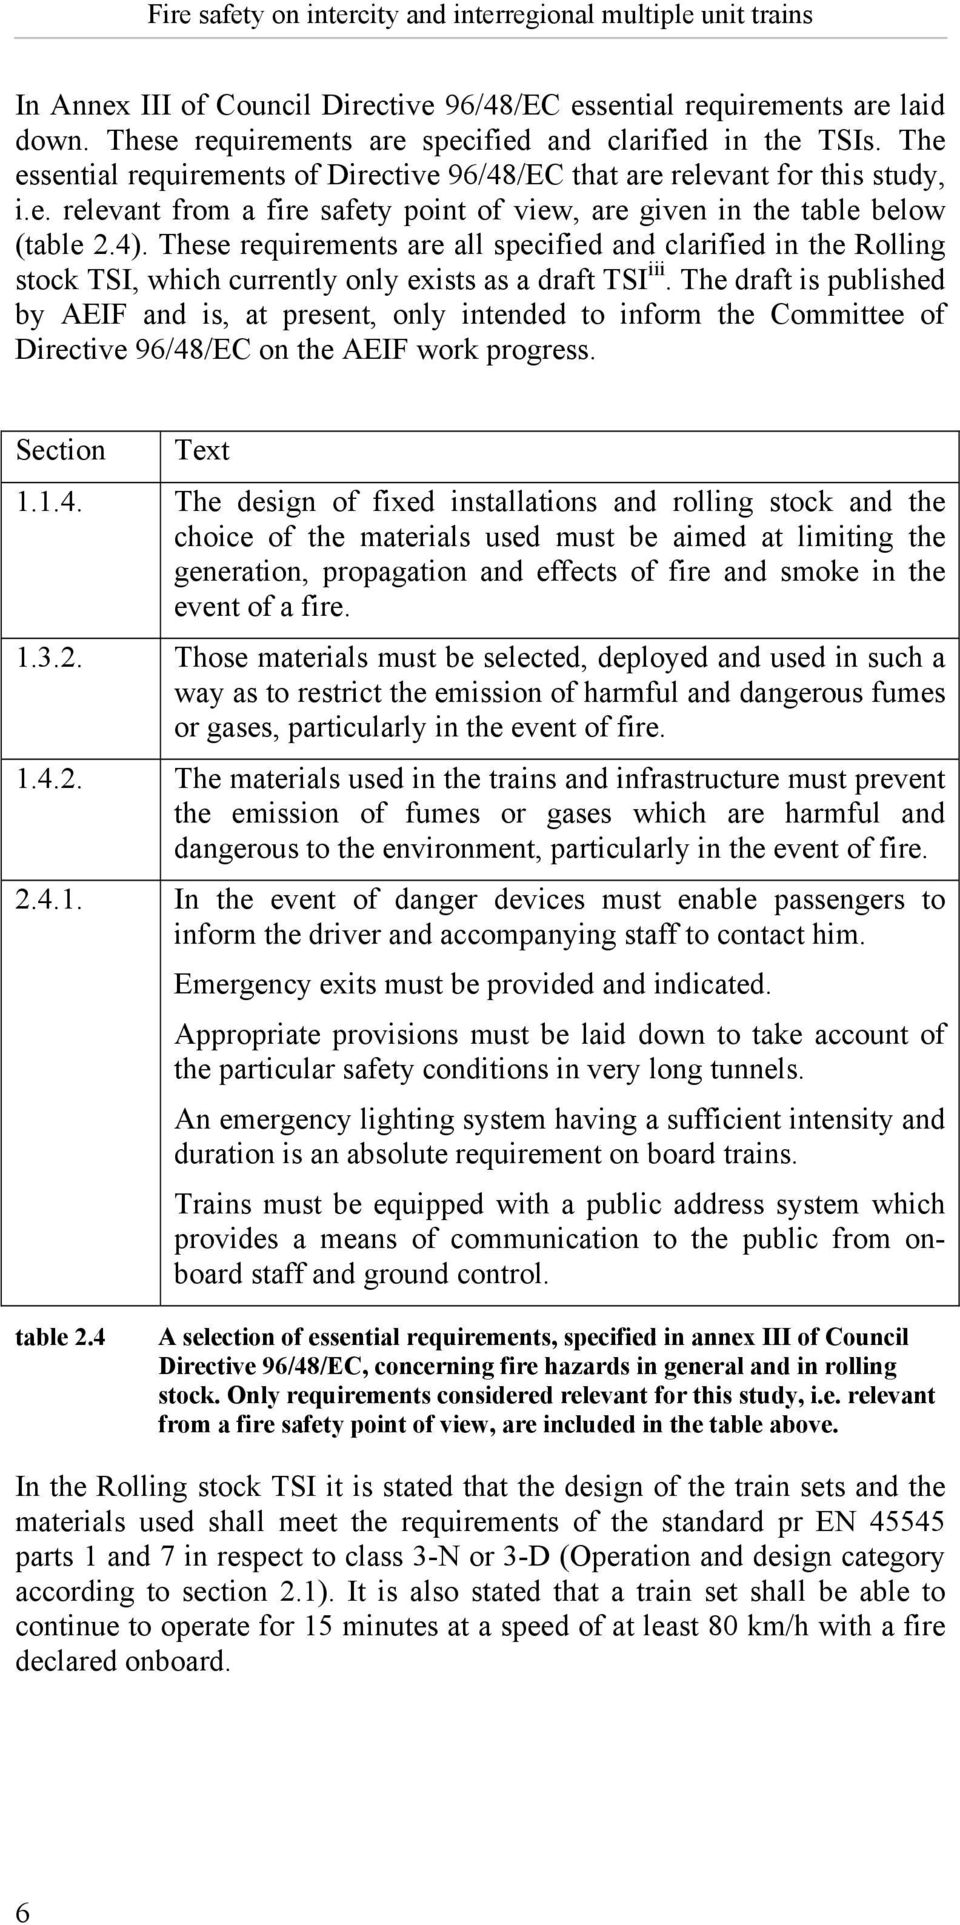 These requirements are all specified and clarified in the Rolling stock TSI, which currently only exists as a draft TSI iii.